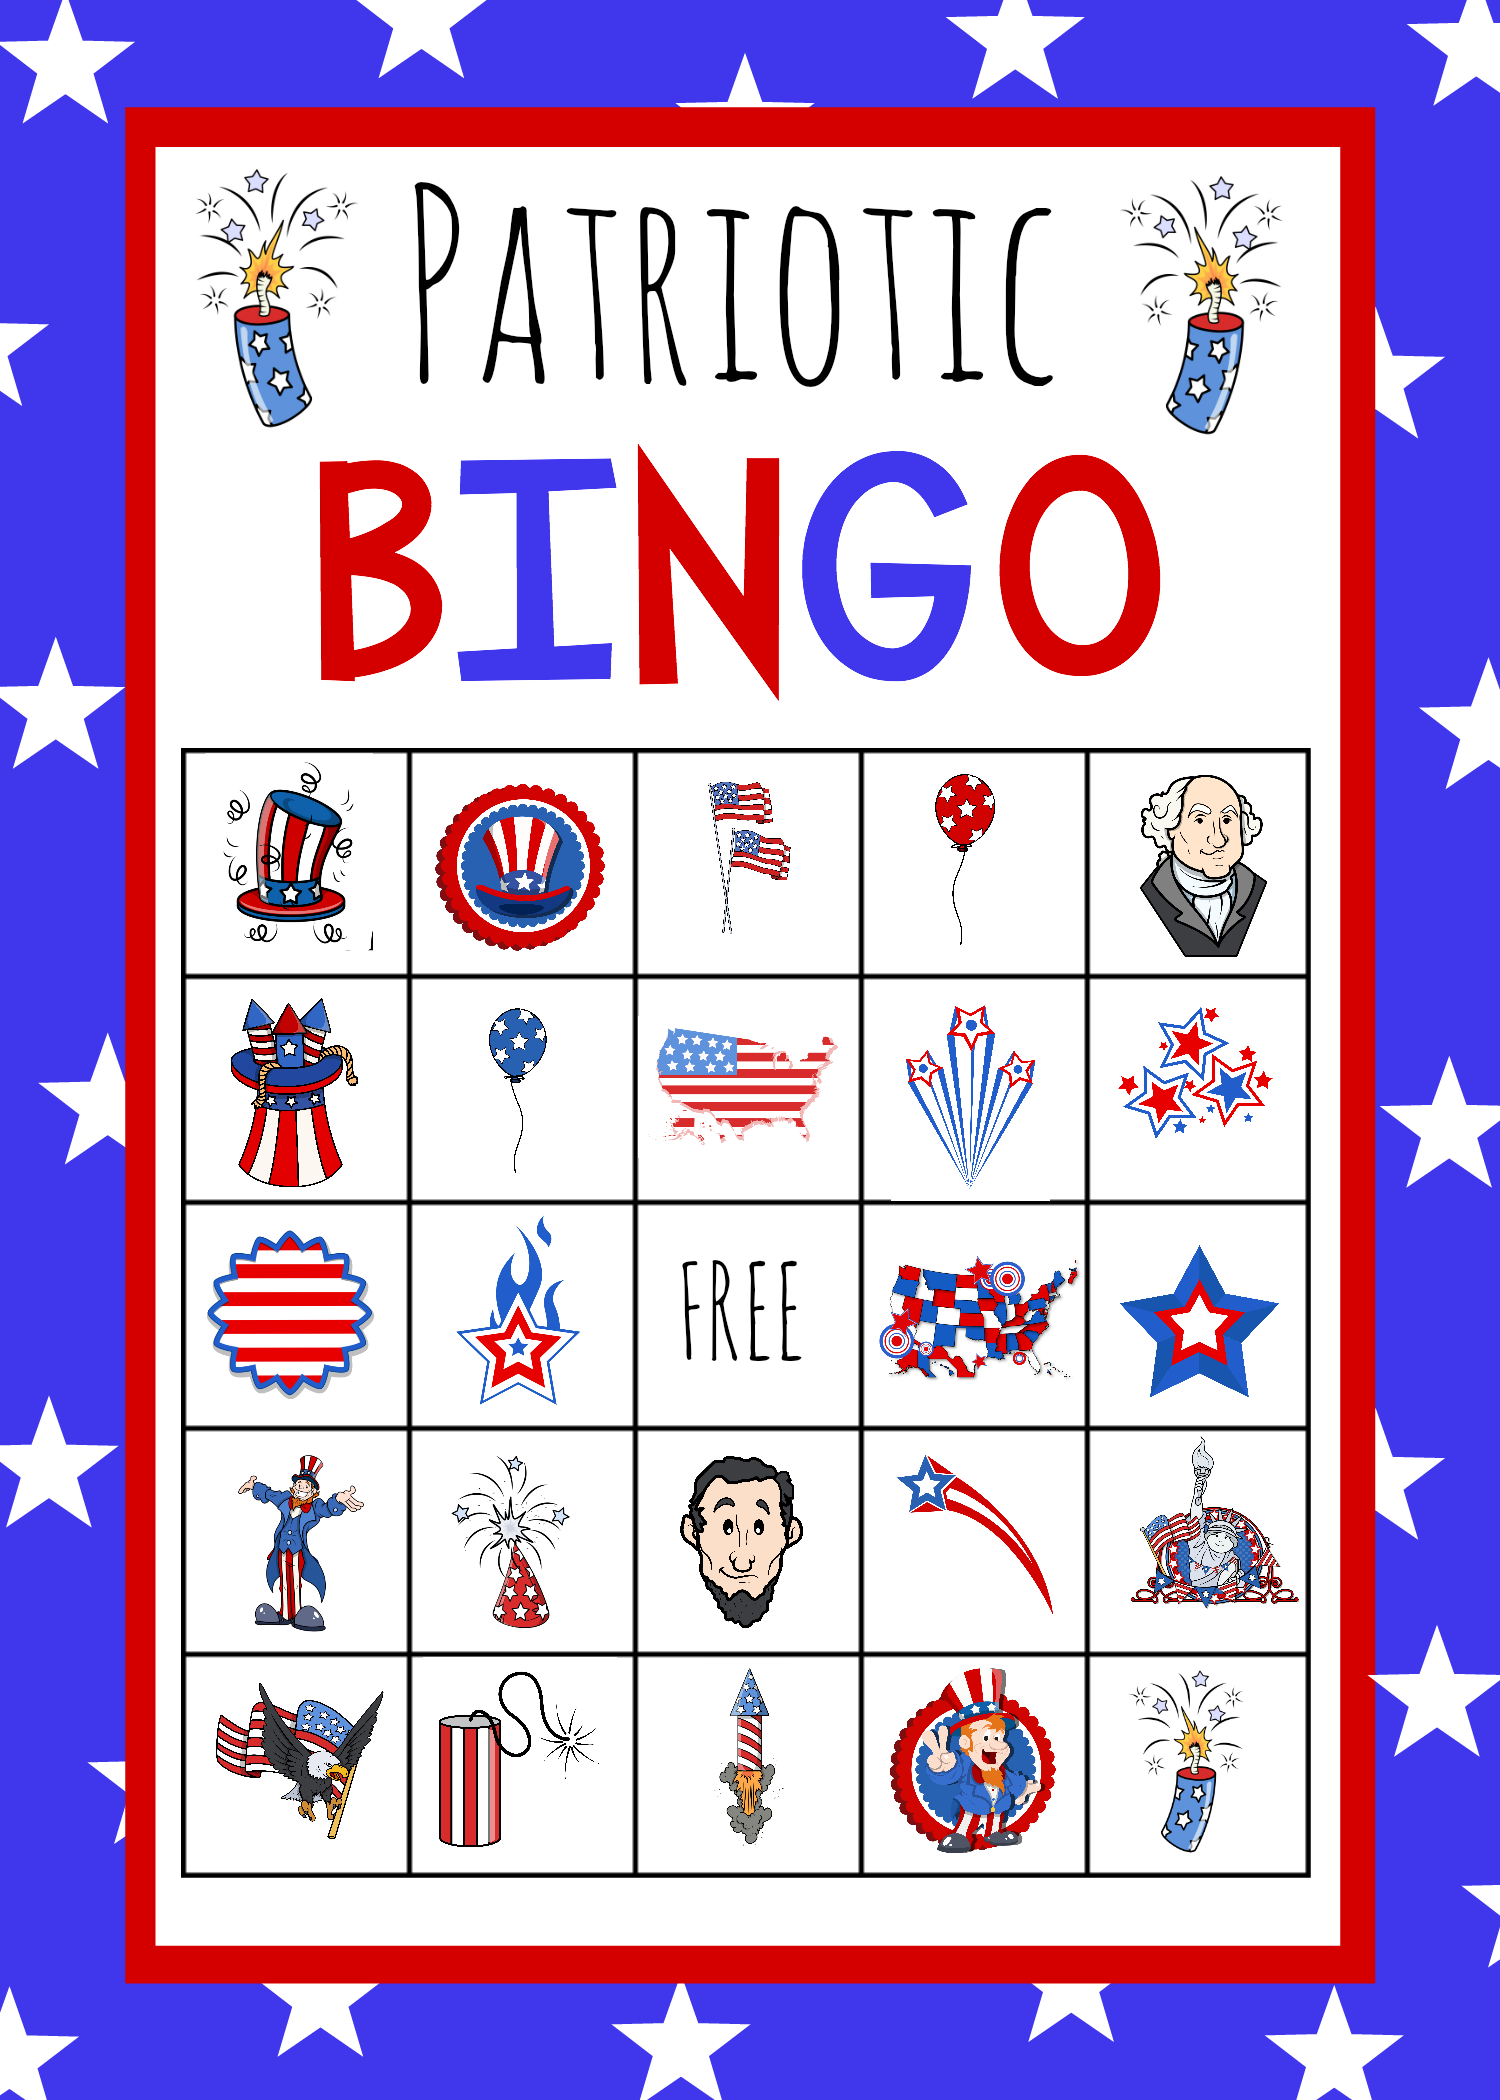 Patriotic 4th Of July Bingo Game To Print